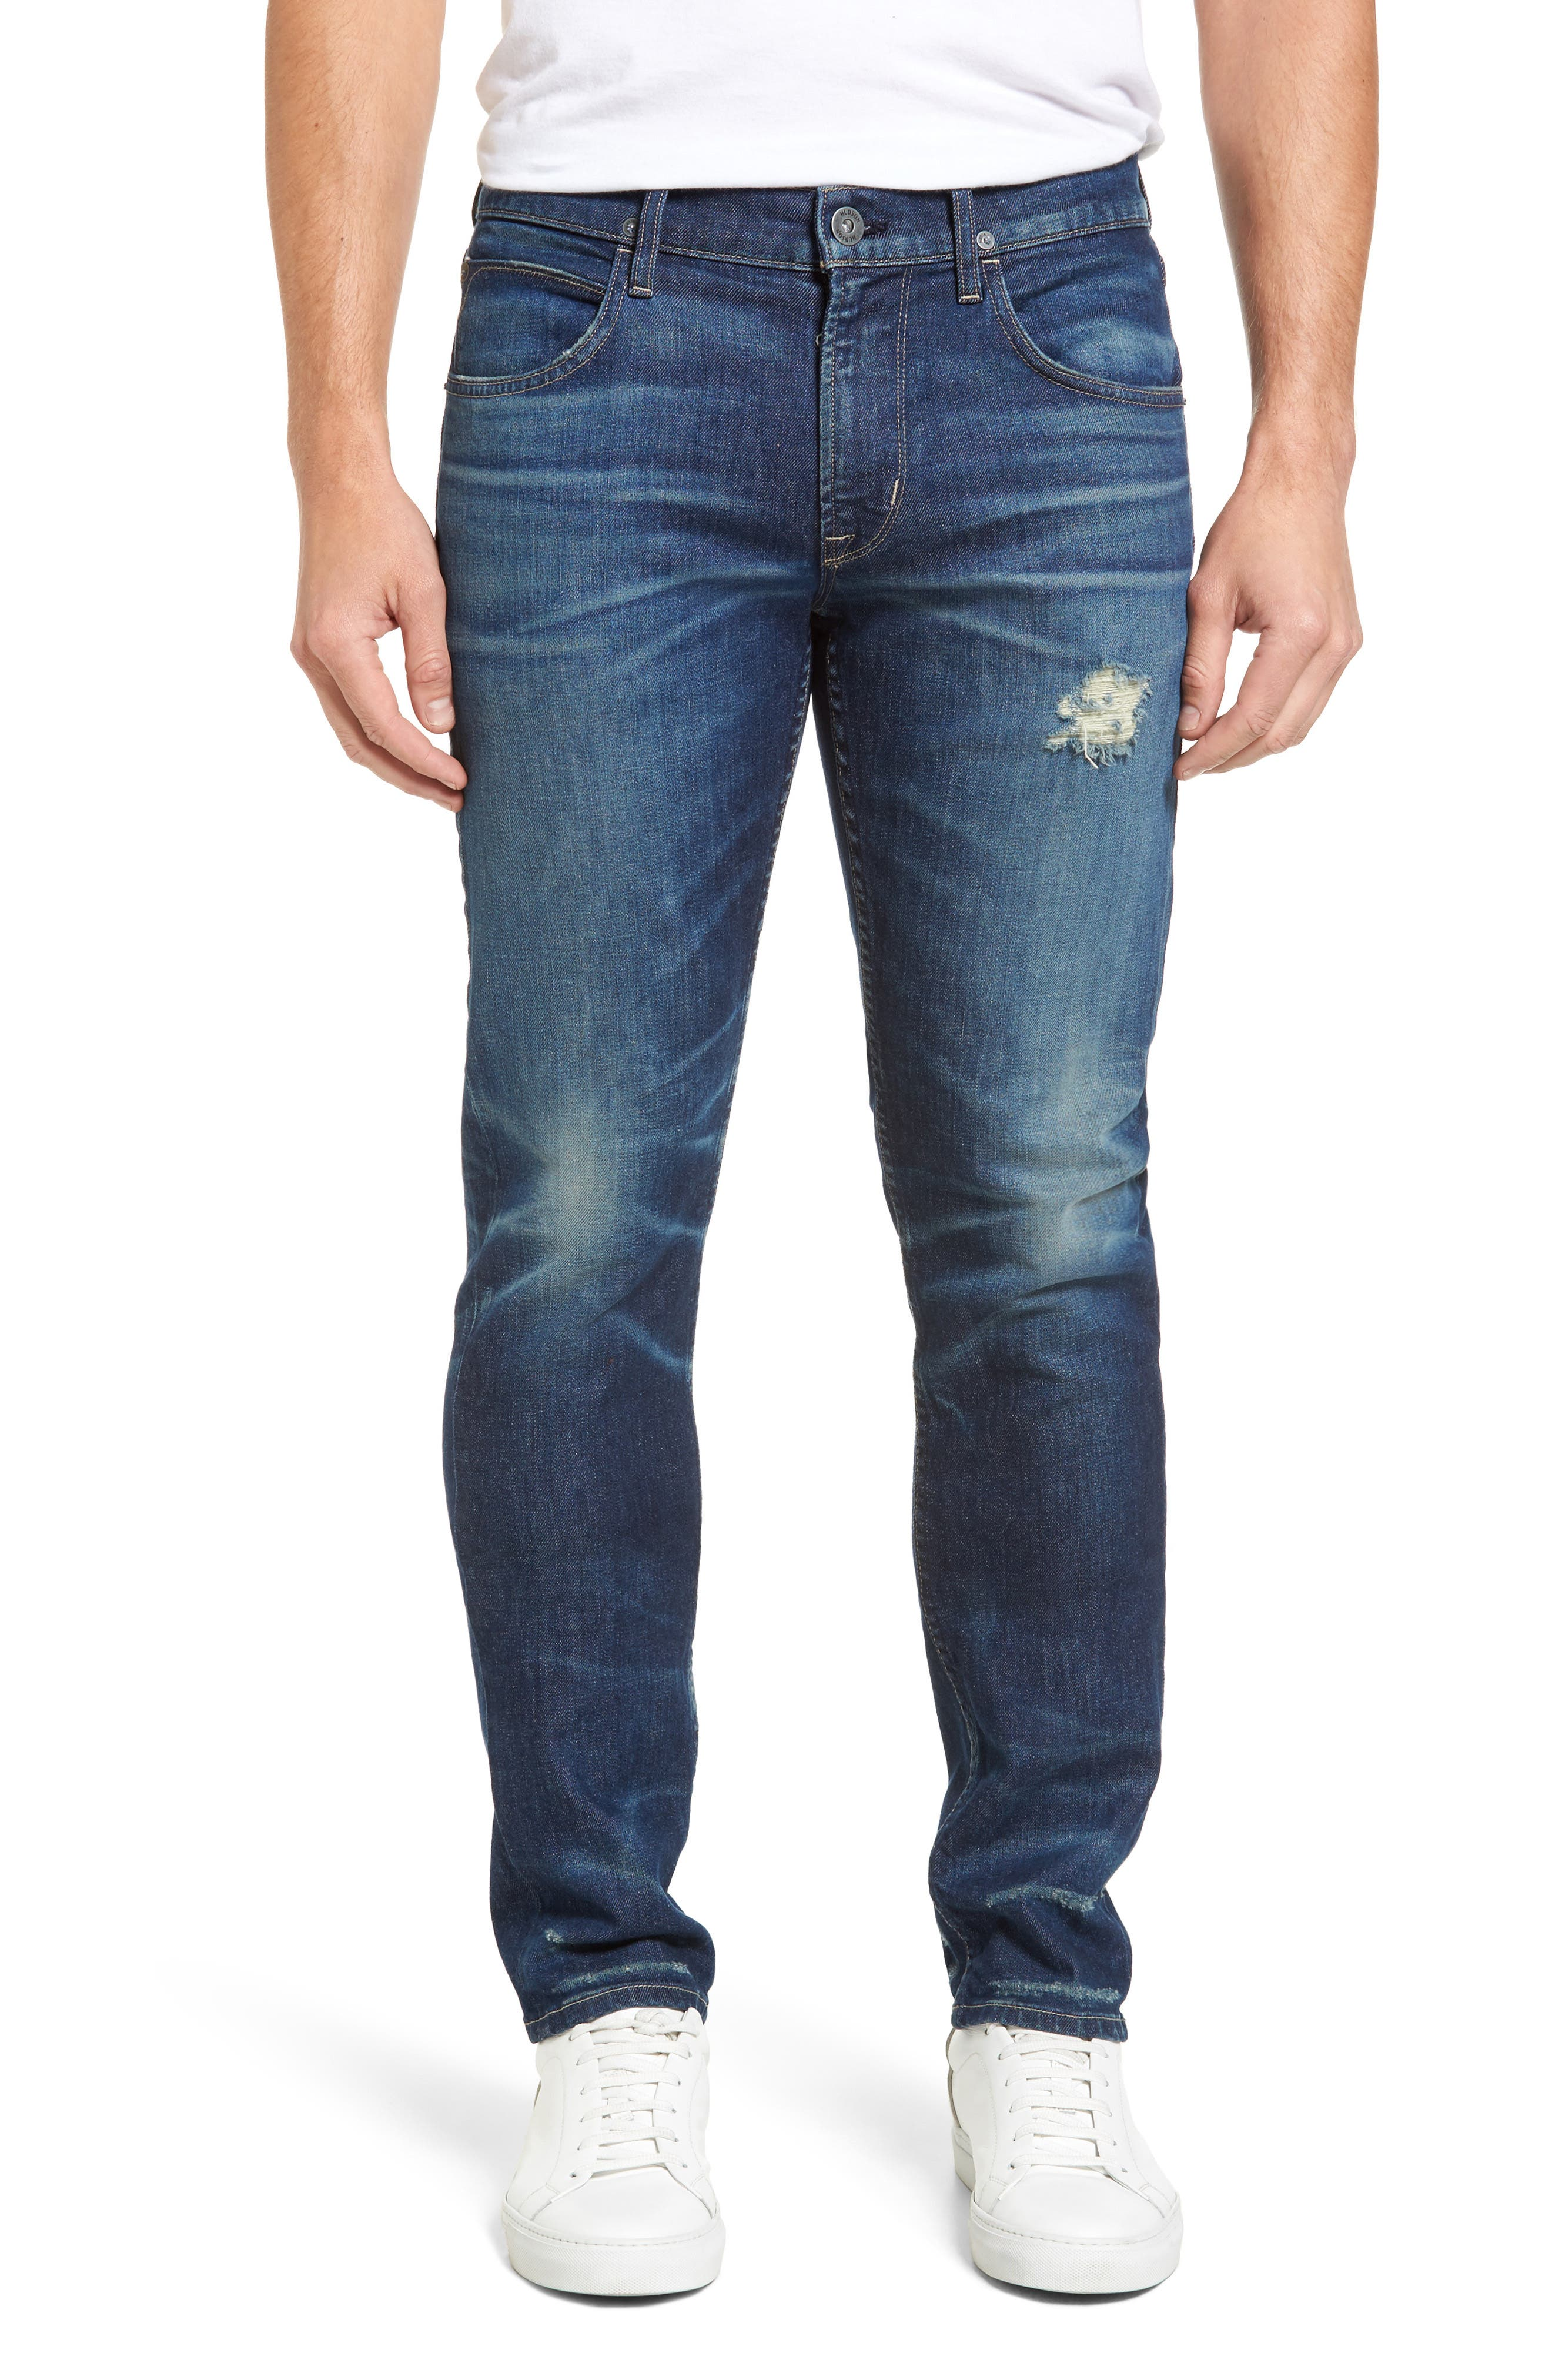 Blake Slim Fit Jeans,                         Main,                         color, Operation